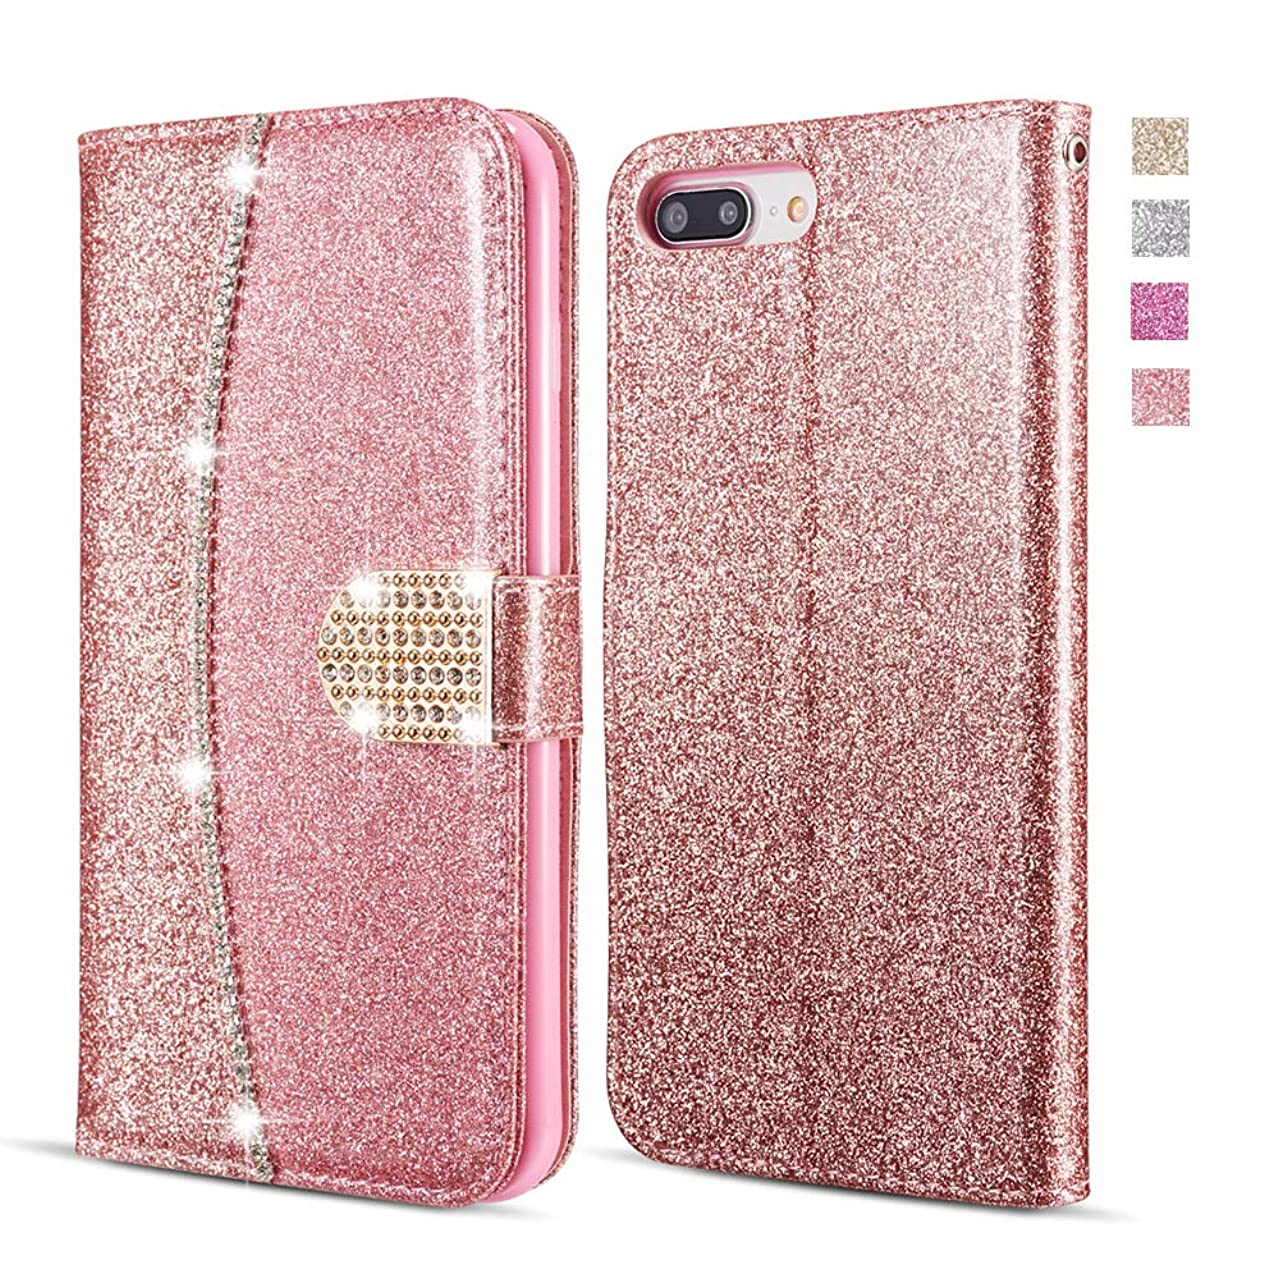 UEEBAI Wallet Flip Case for Sony Xperia XA, Premium Glitter Glossy PU Leather Case with Diamond Buckle [Card Slots] [Magnetic Clasp] Stand Function Rhinestone Strap Handbag TPU Cover - Rose Gold